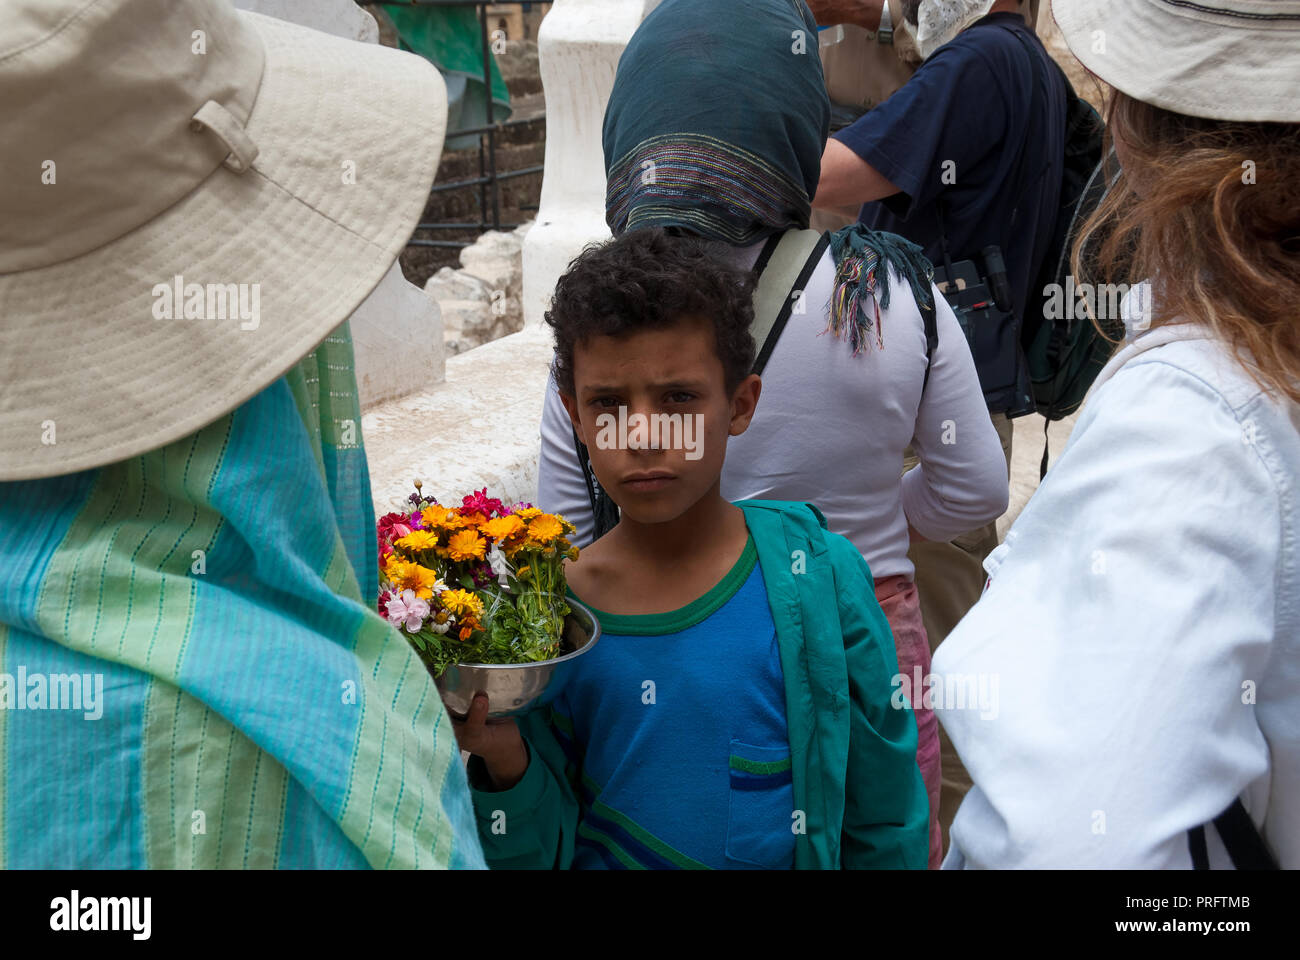 A boy sells flowers to tourists in May 10, 2007 in Jibla, Yemen. Among other arabic countries, in 2012 Yemen became a site of civil conflicts. - Stock Image